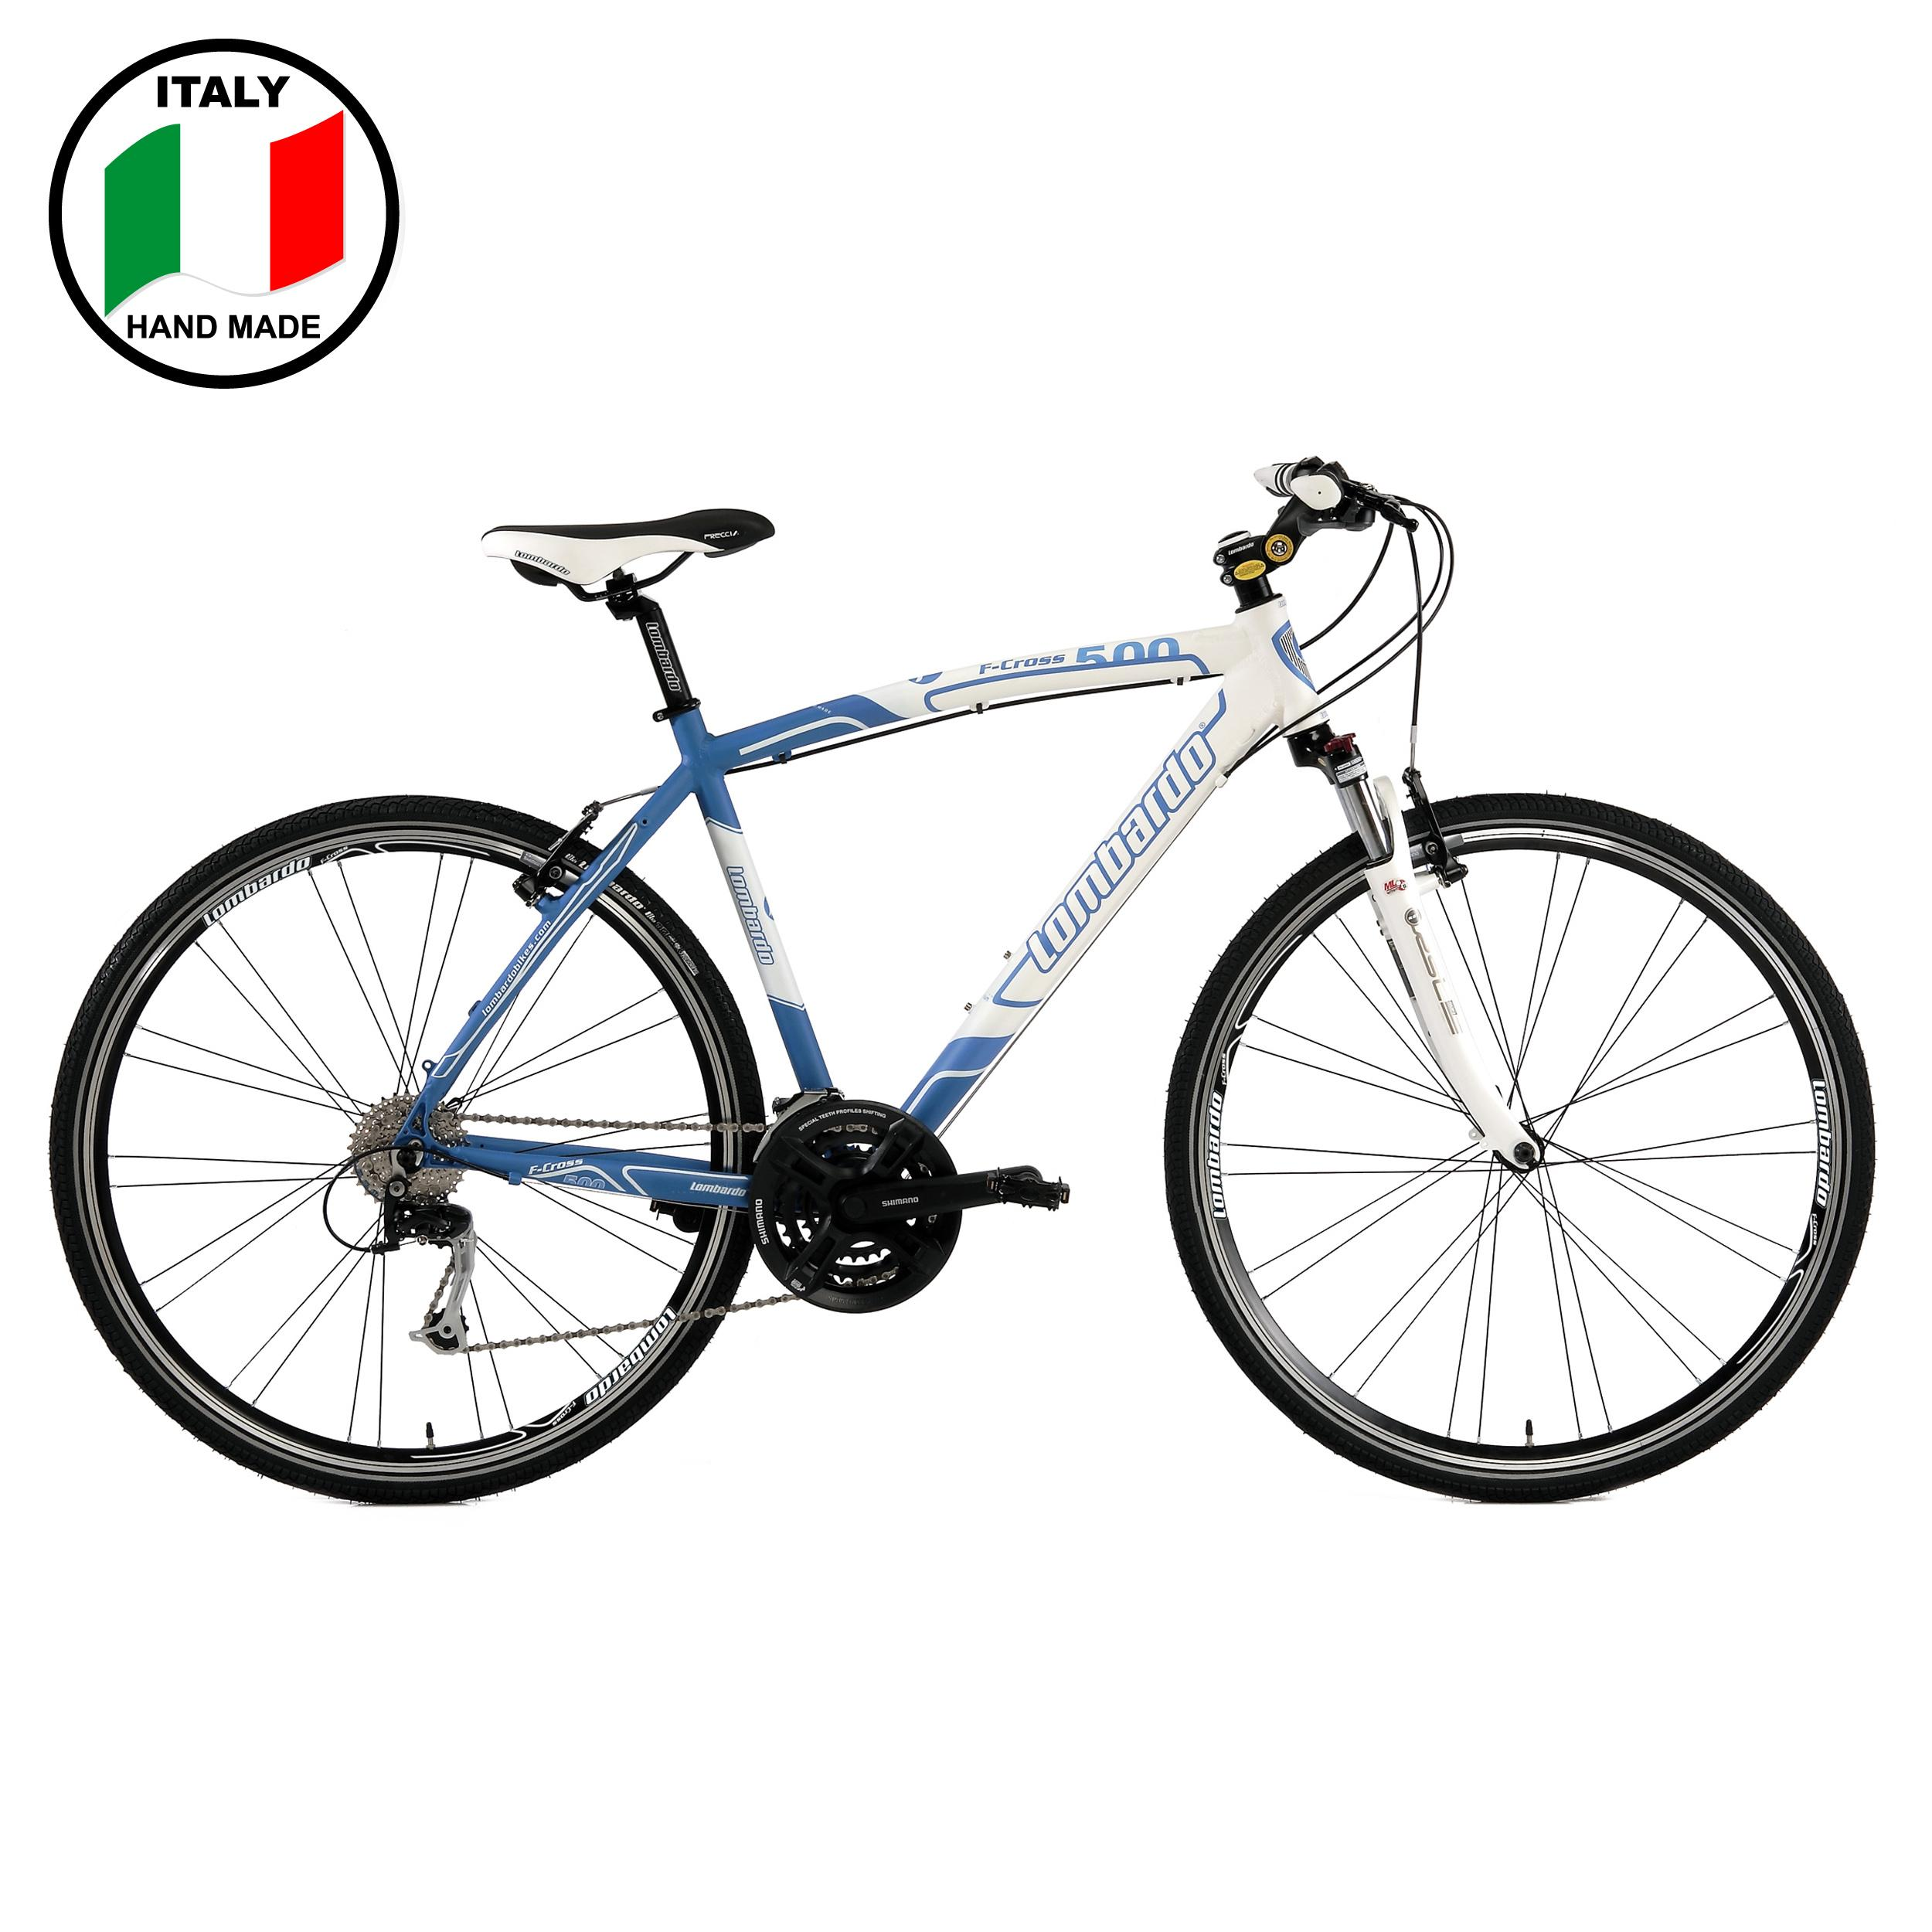 Lombardo Men's F-Cross 500 Bicycle